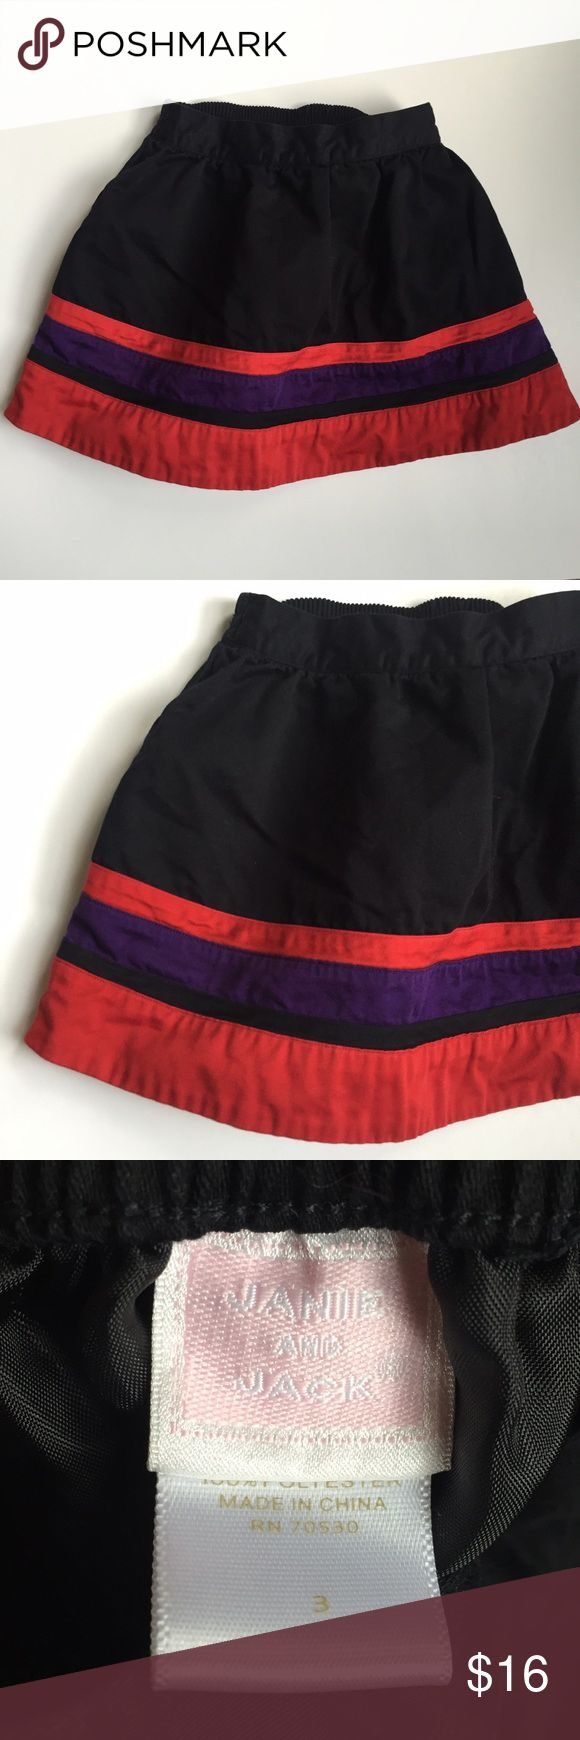 Janie & Jack black ponte skirt sz 3. Stripes! Janie & Jack black ponte skirt. Size: 3. Red and purple stripes at hem. Elastic at back of waist band. Fully lined. Beautiful skirt. Great preowned condition. Janie and Jack Bottoms Skirts